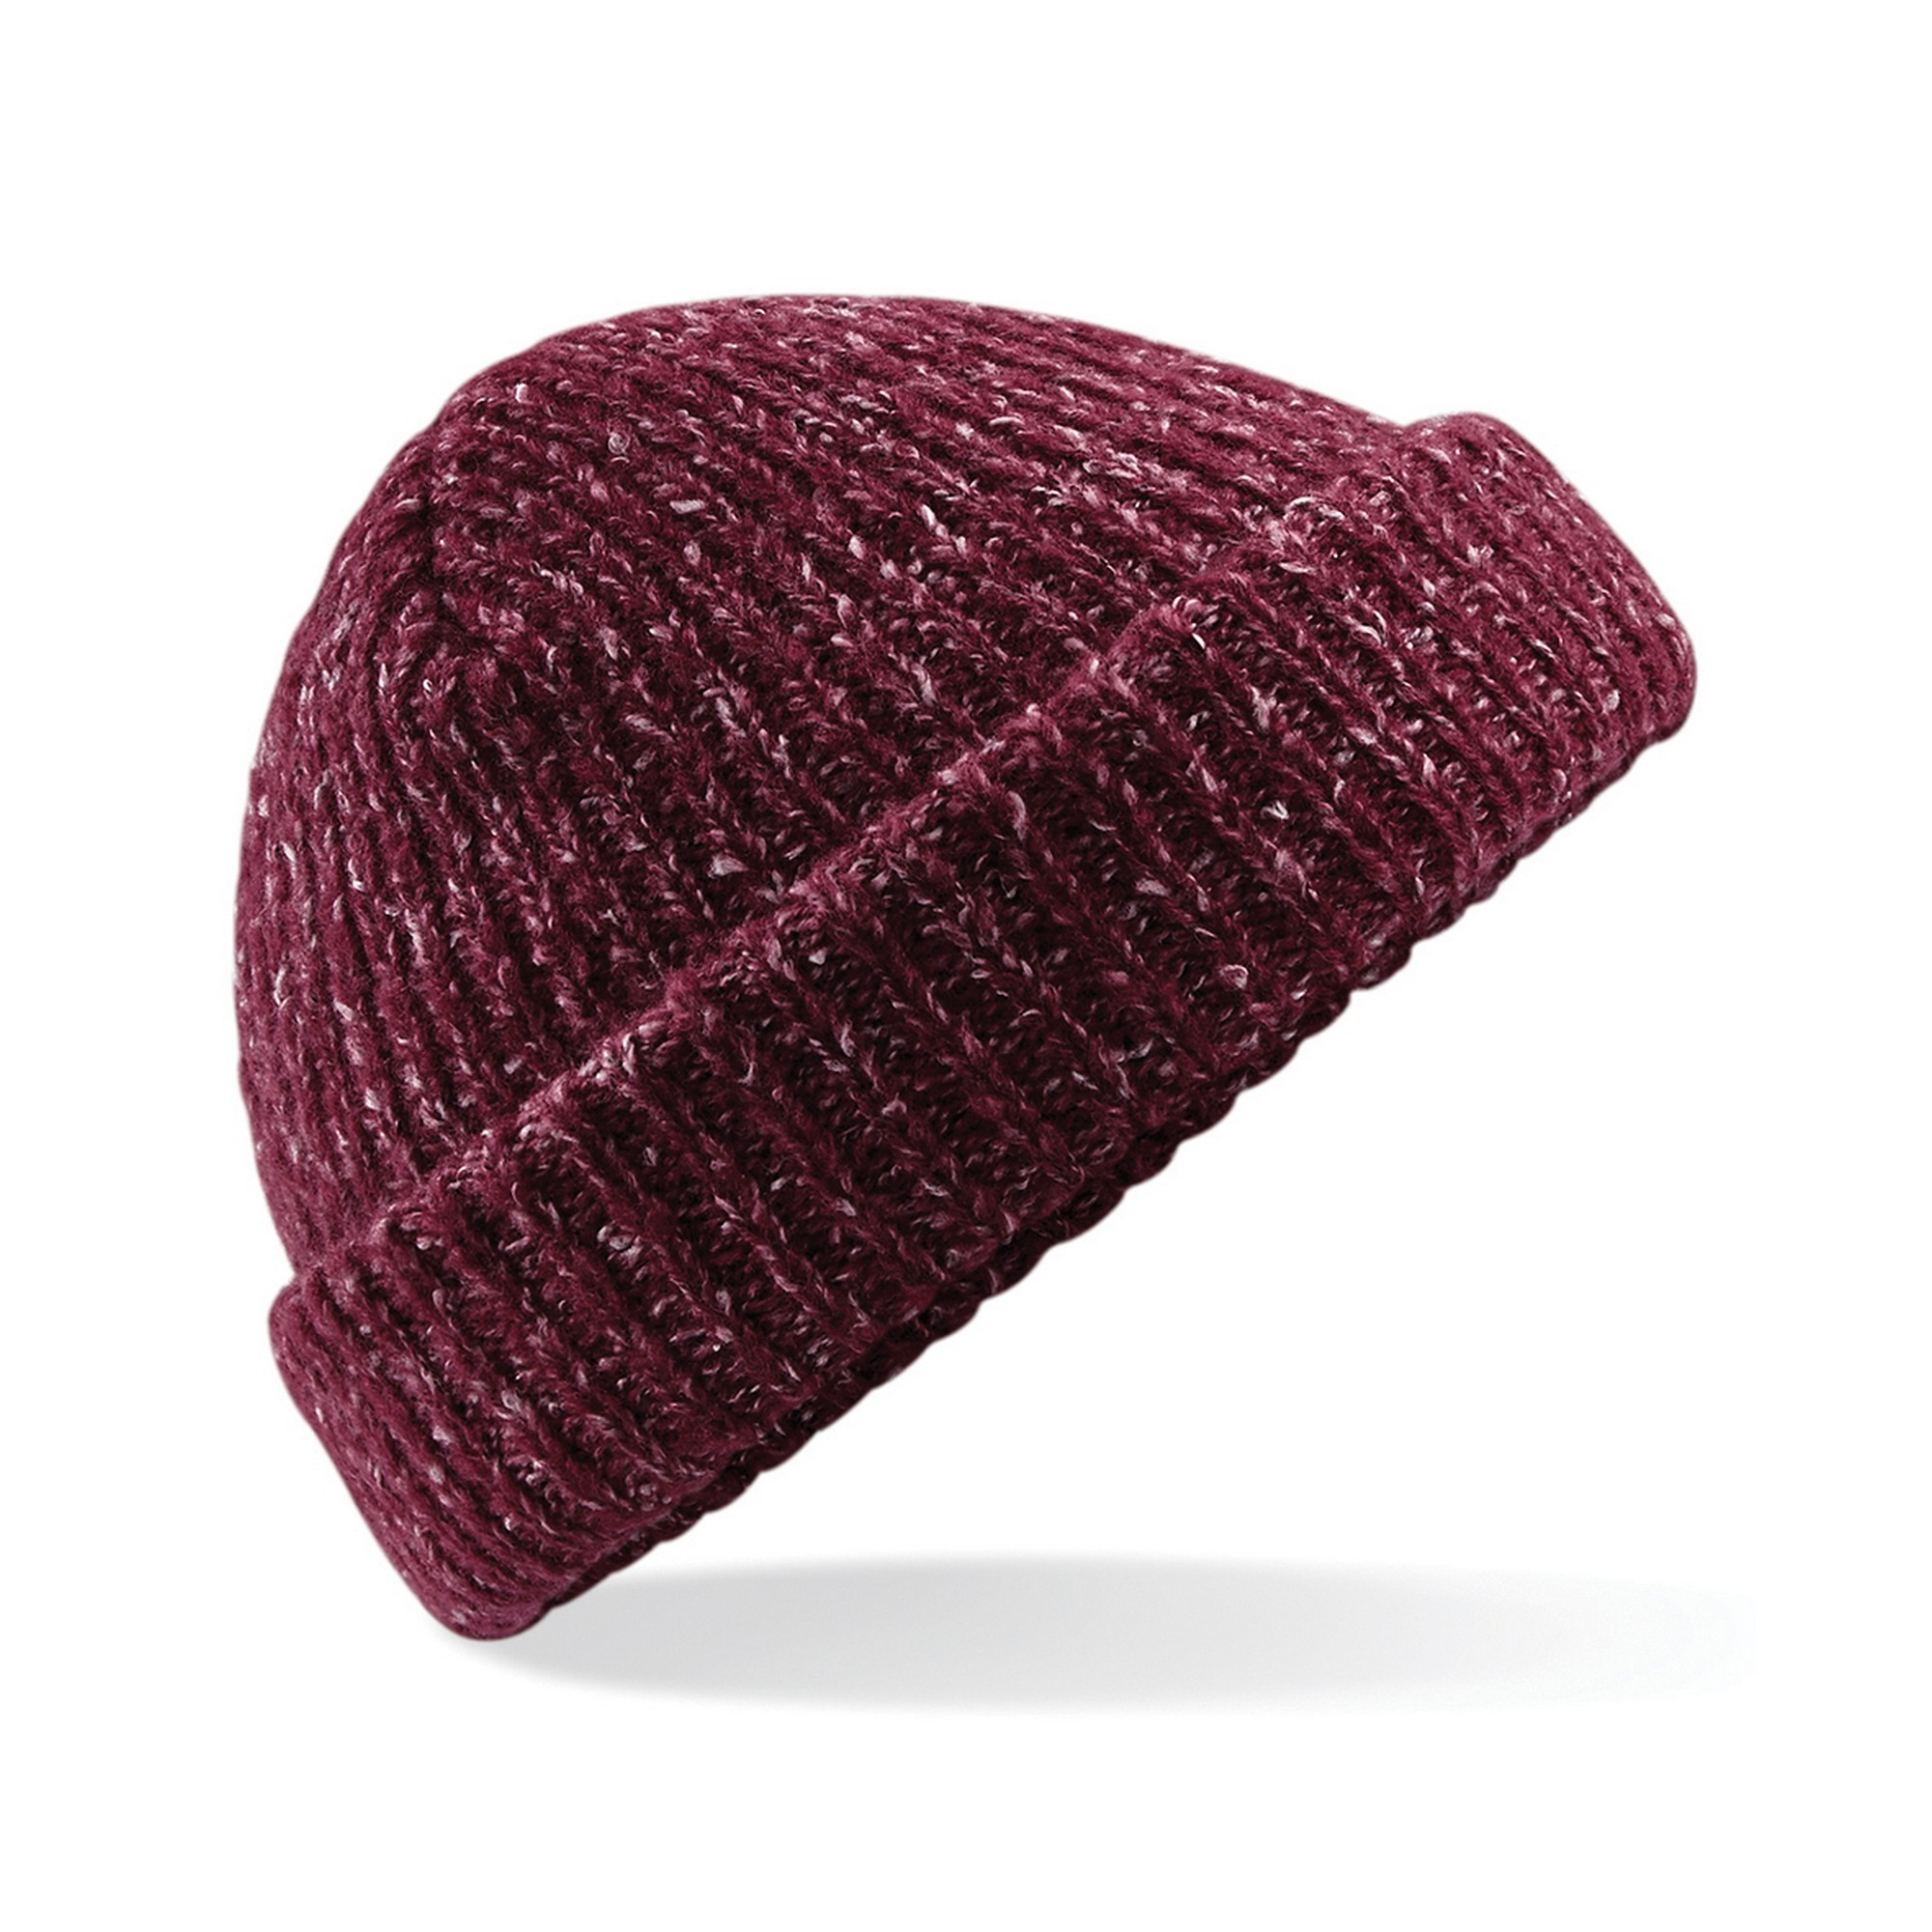 8072382ec37 Beechfield Unisex Adults Glencoe Knitted Winter Beanie Hat Utrw5189 ...